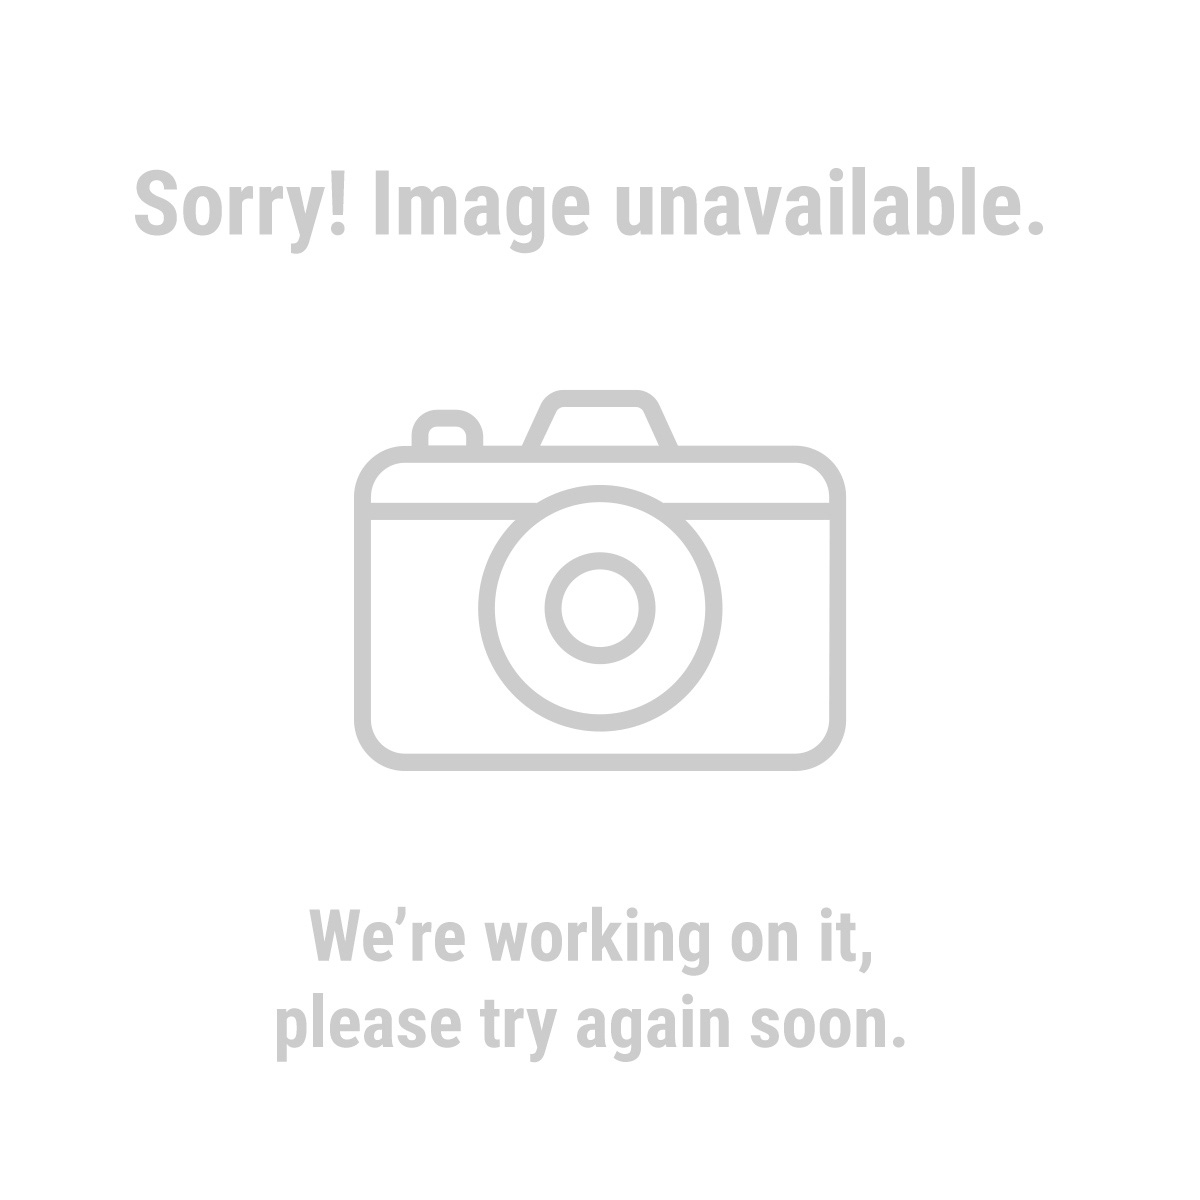 1/2 in Professional Air Impact Wrench